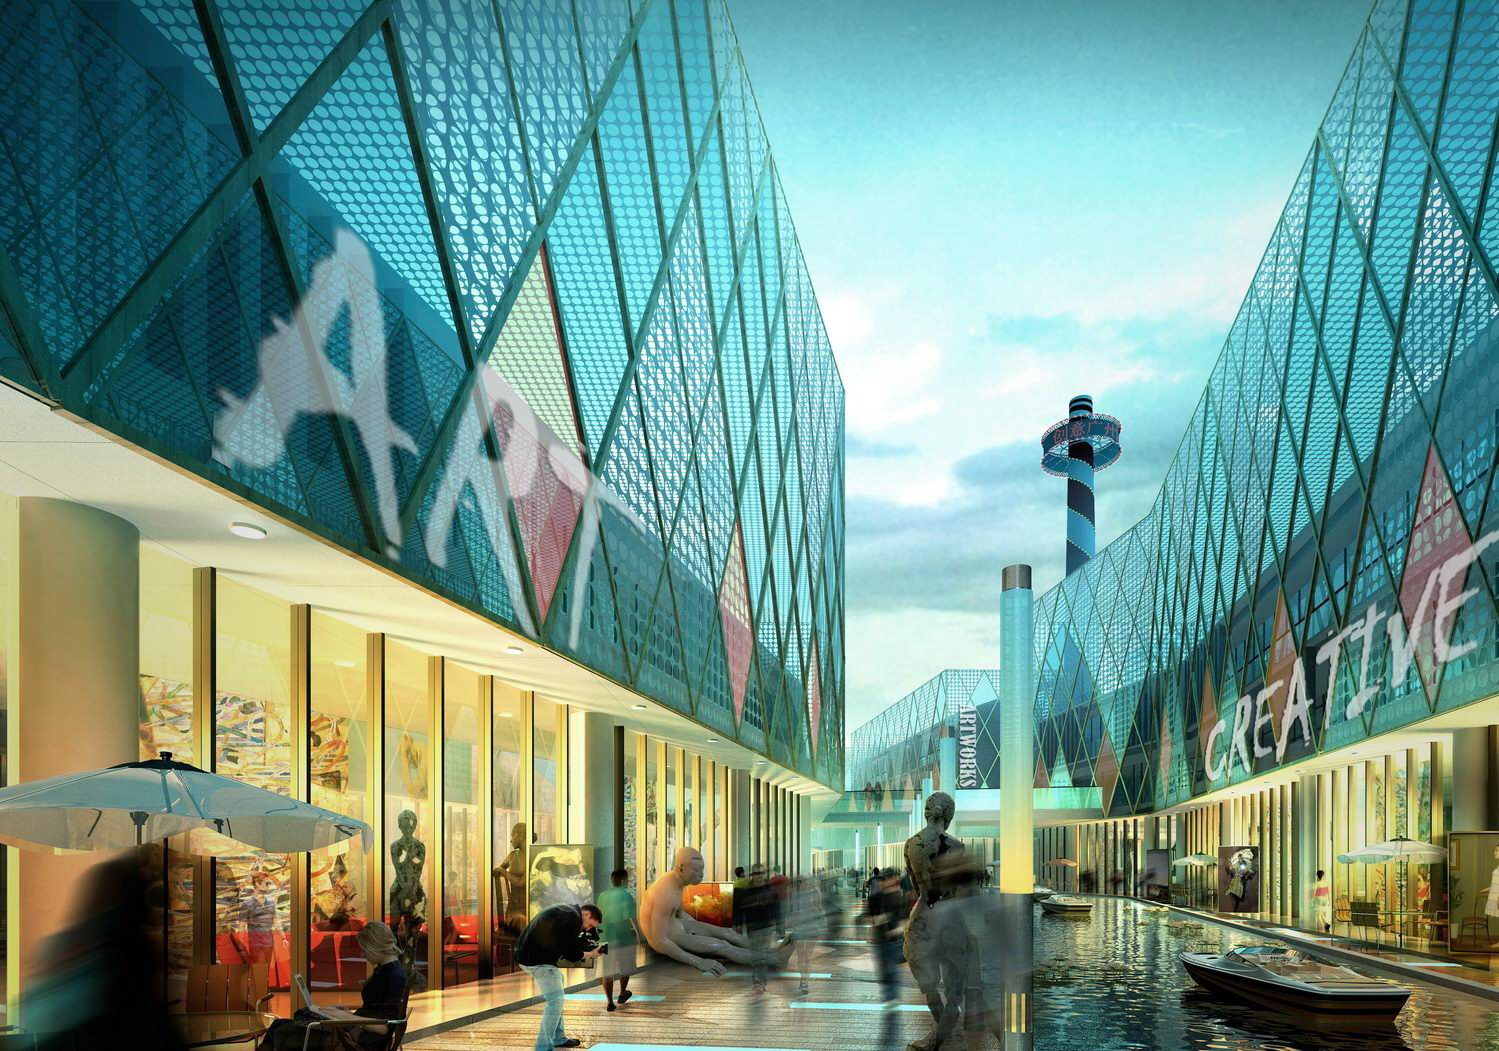 3d architecture 3d building and shops night view tweet this bookmark ...